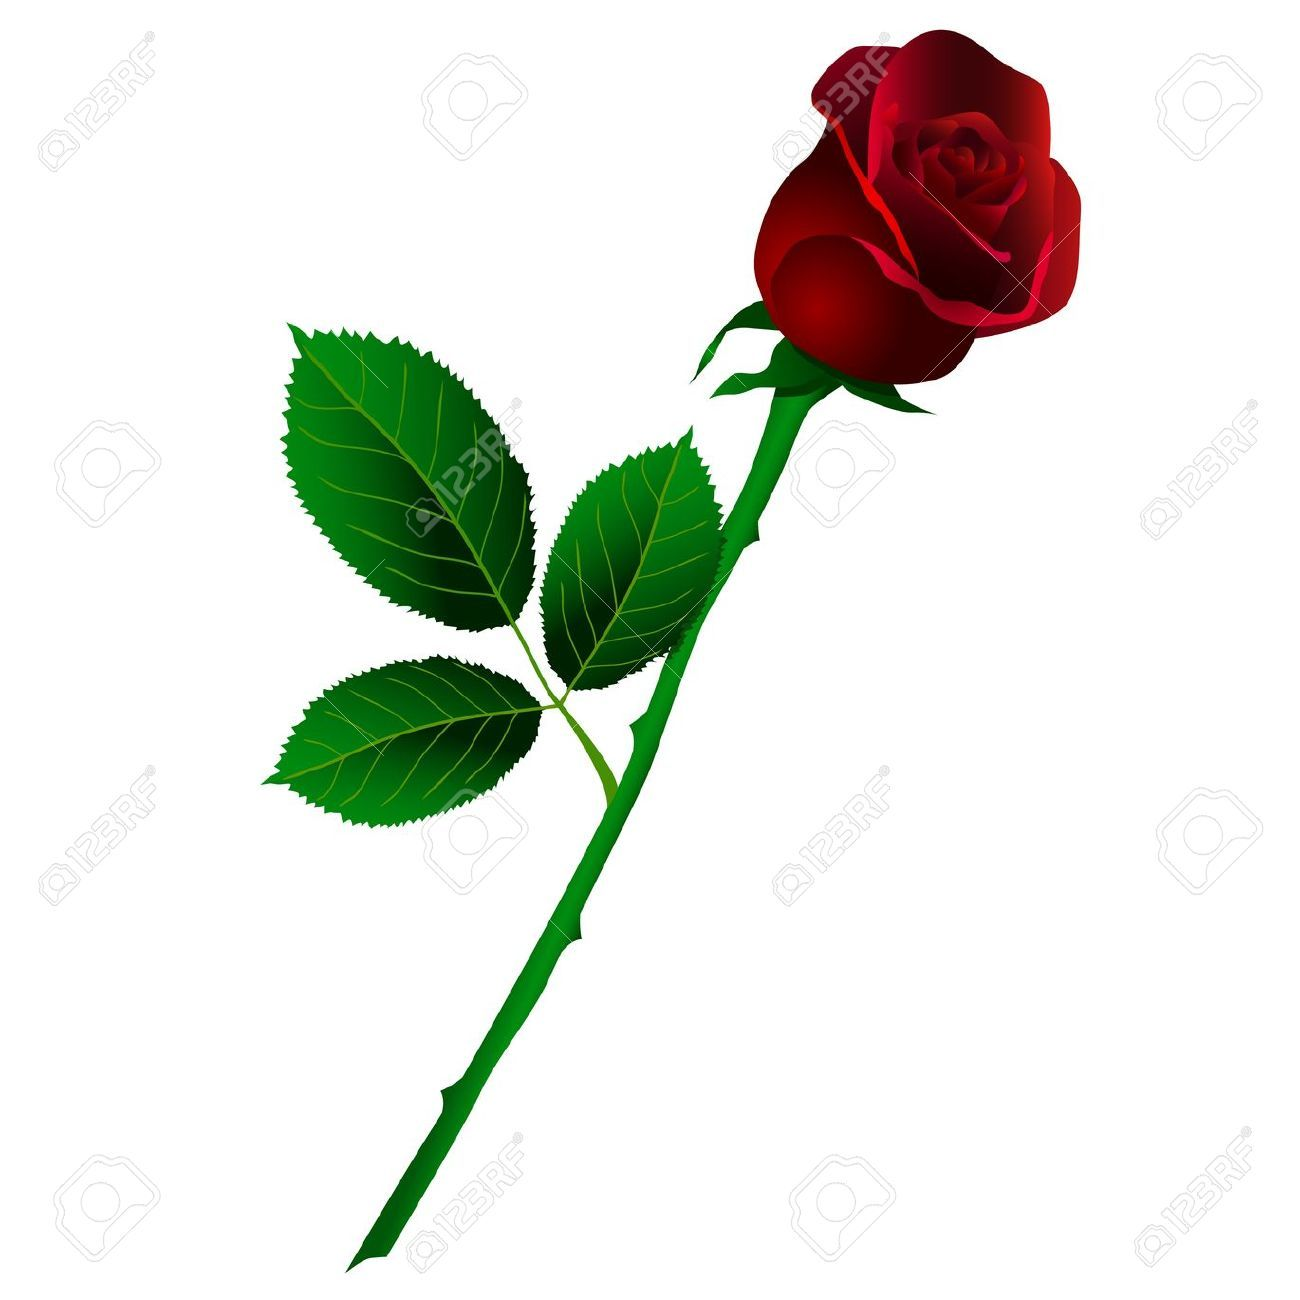 Rose with stem clipart png royalty free Rose with stem clipart » Clipart Portal png royalty free